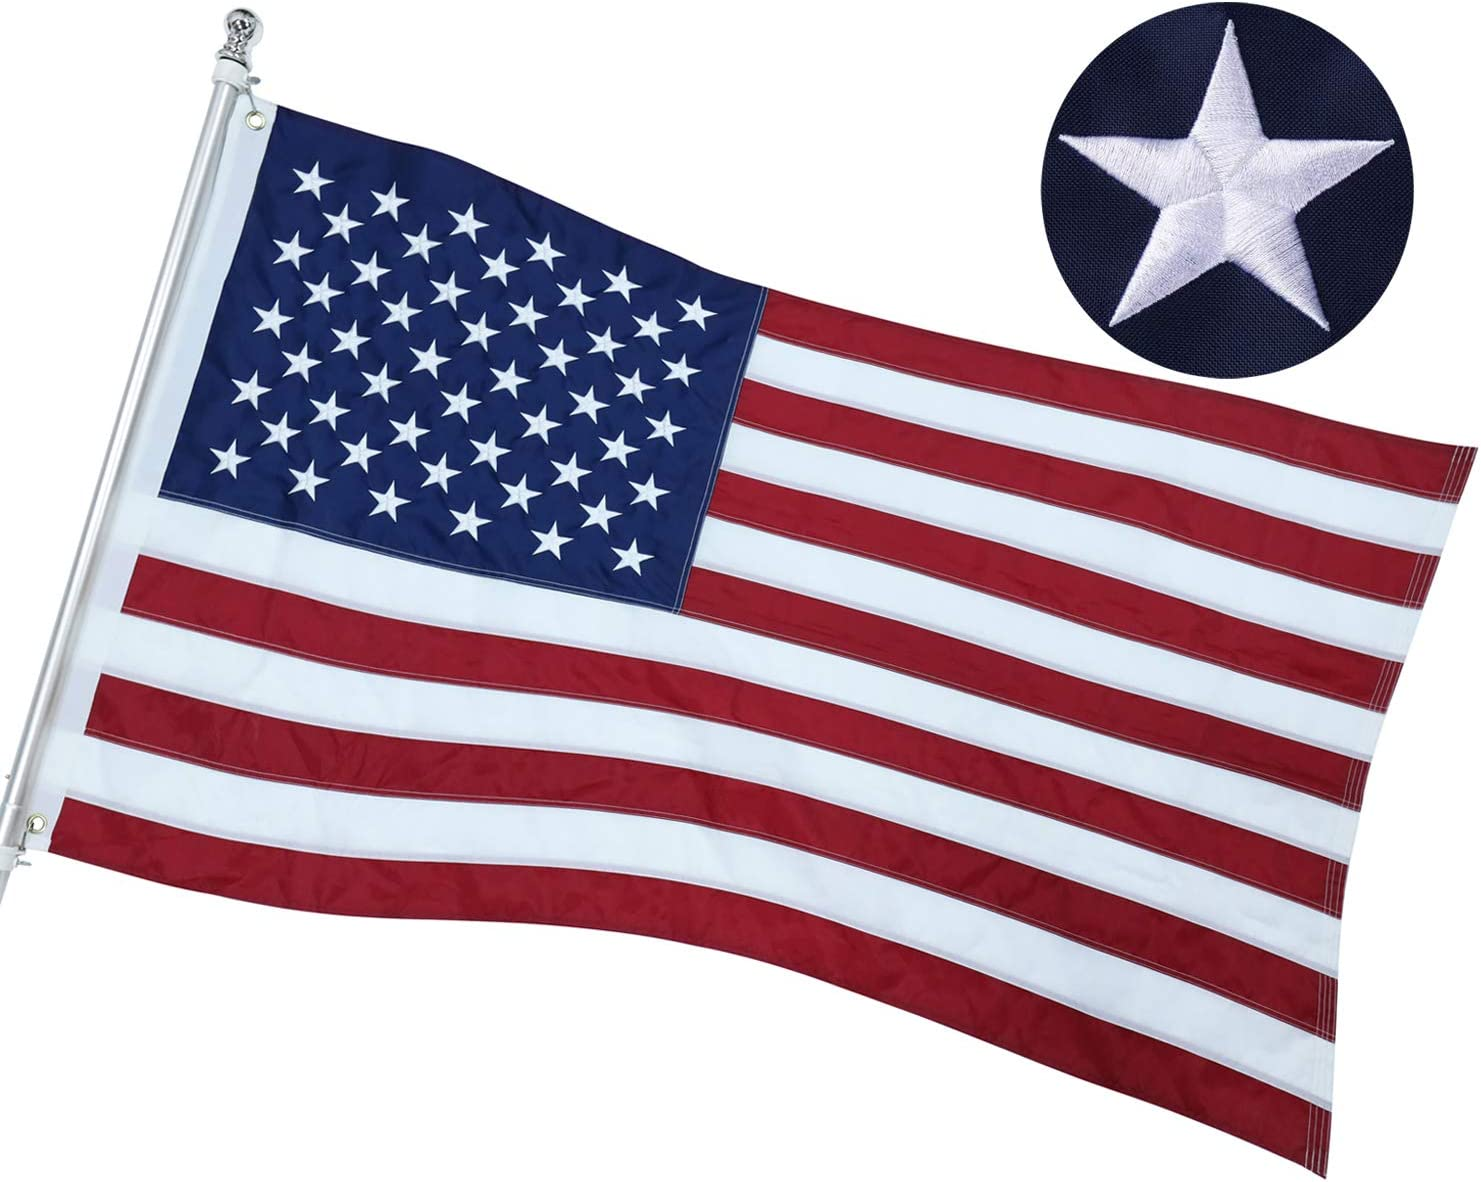 Atoah American Flag 2x3 Ft, Heavy-Duty US Flag 100% Made in USA with Embroidered Stars/Sewn Stripes/Brass Grommets, Tough Durable Fade Resistant USA Flag Built for Indoor Outdoor Use